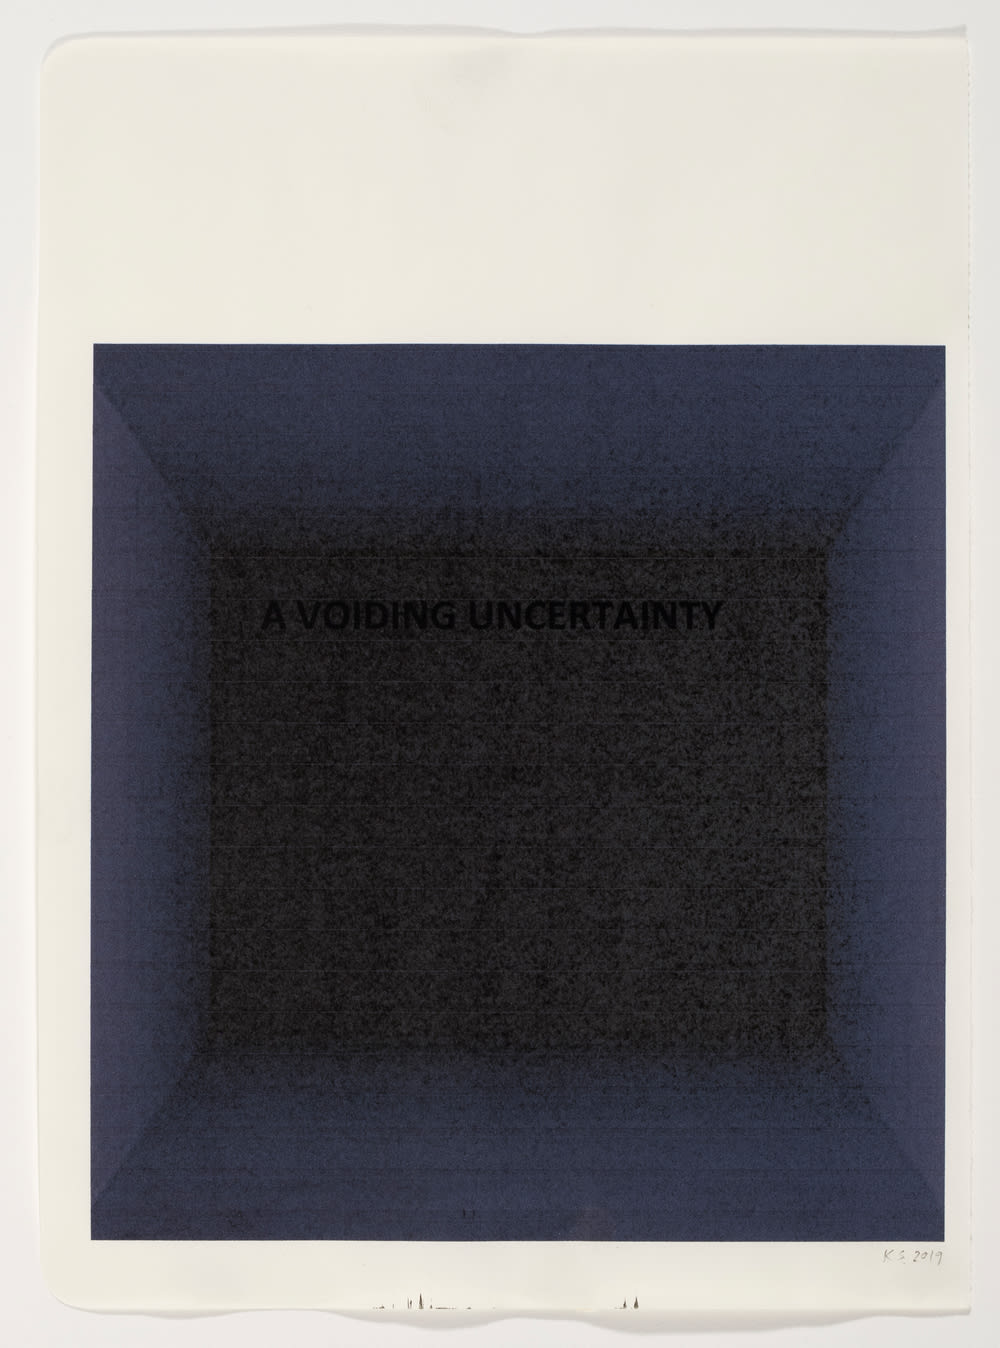 Katherine Spindler, A Voiding Uncertainty , 2019